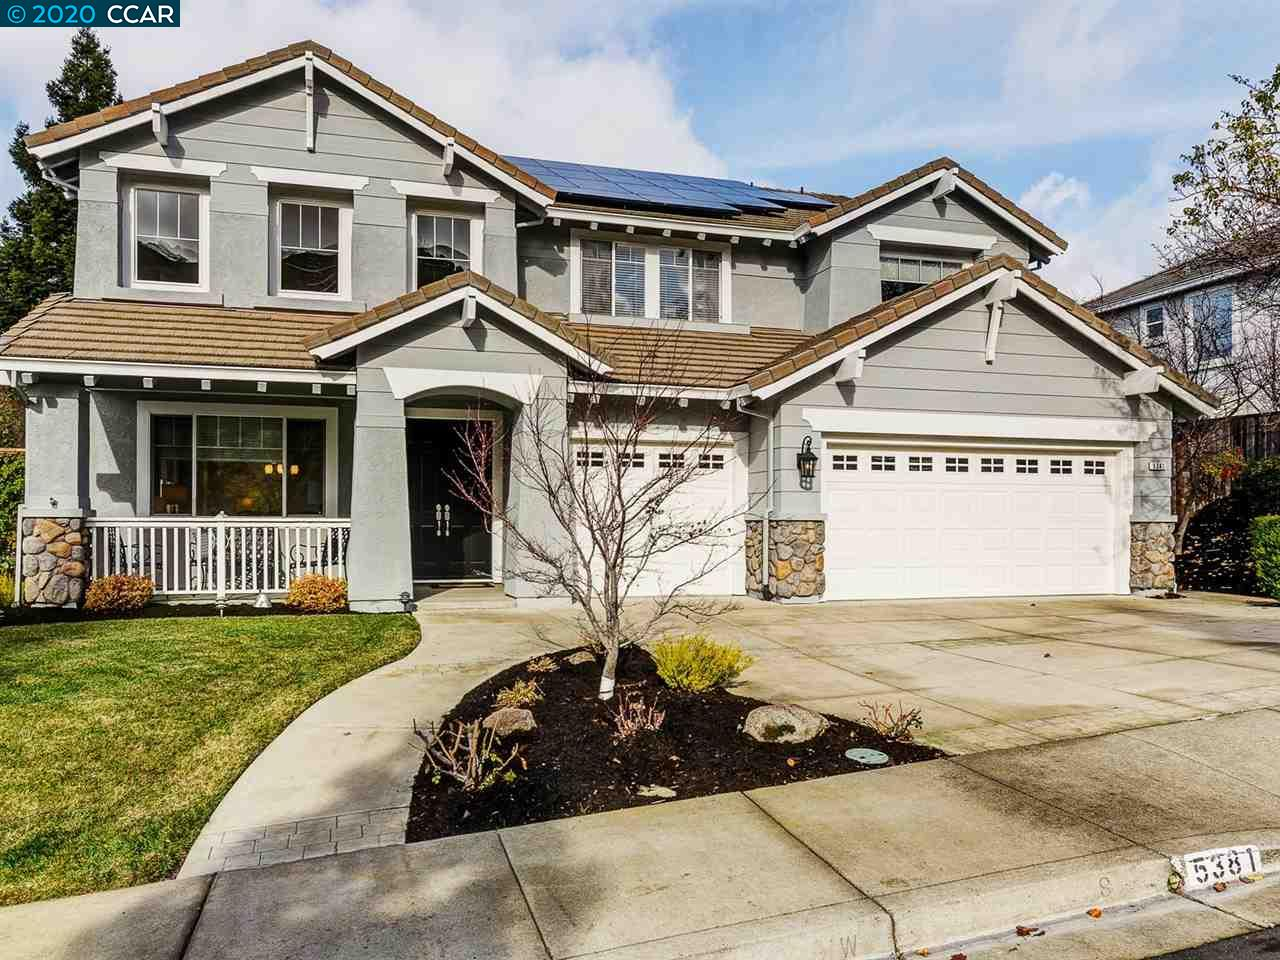 Photo of 5381 Aspenwood Ct, CONCORD, CA 94521